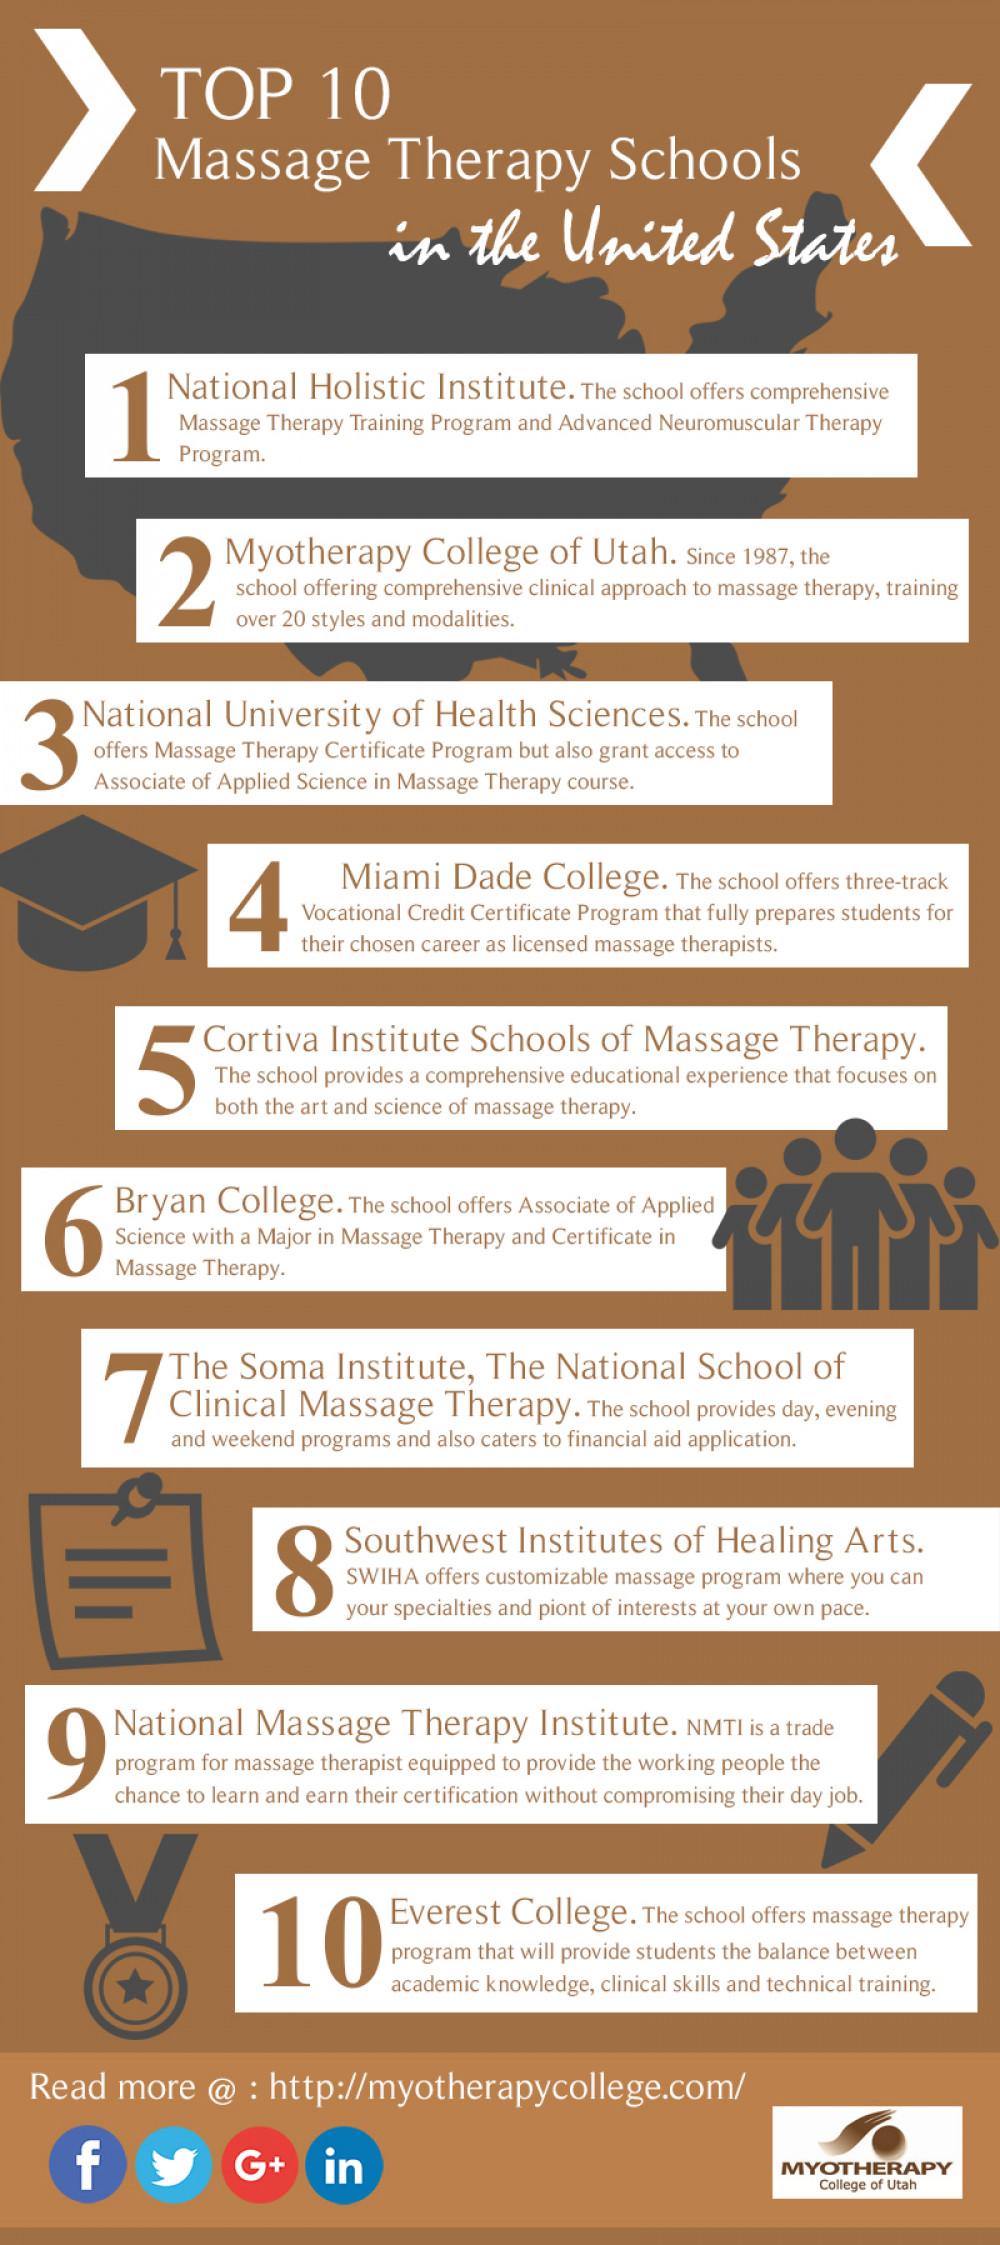 Top 10 Massage Therapy Schools In The United States